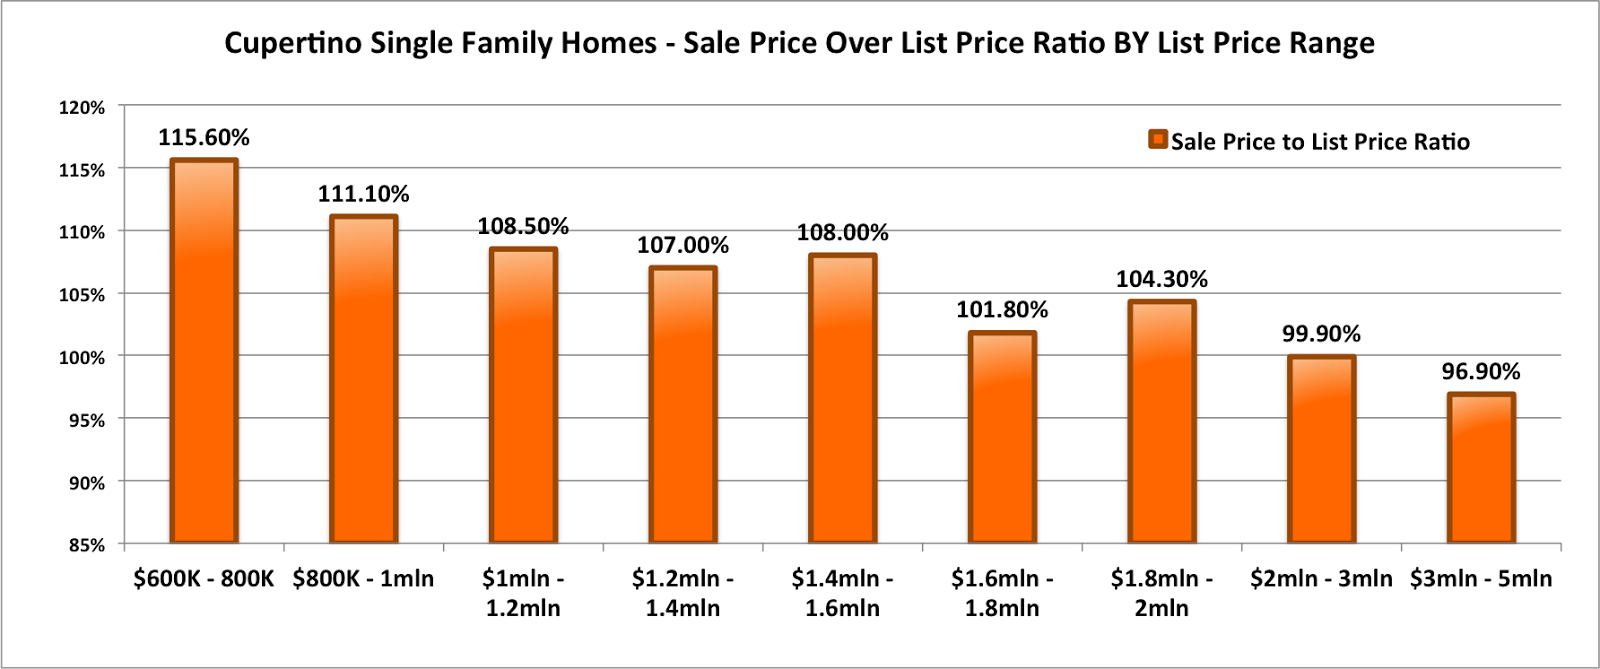 Cupertino Single Family Homes: Average Sale Price Over List Price Distributed By List Price Range